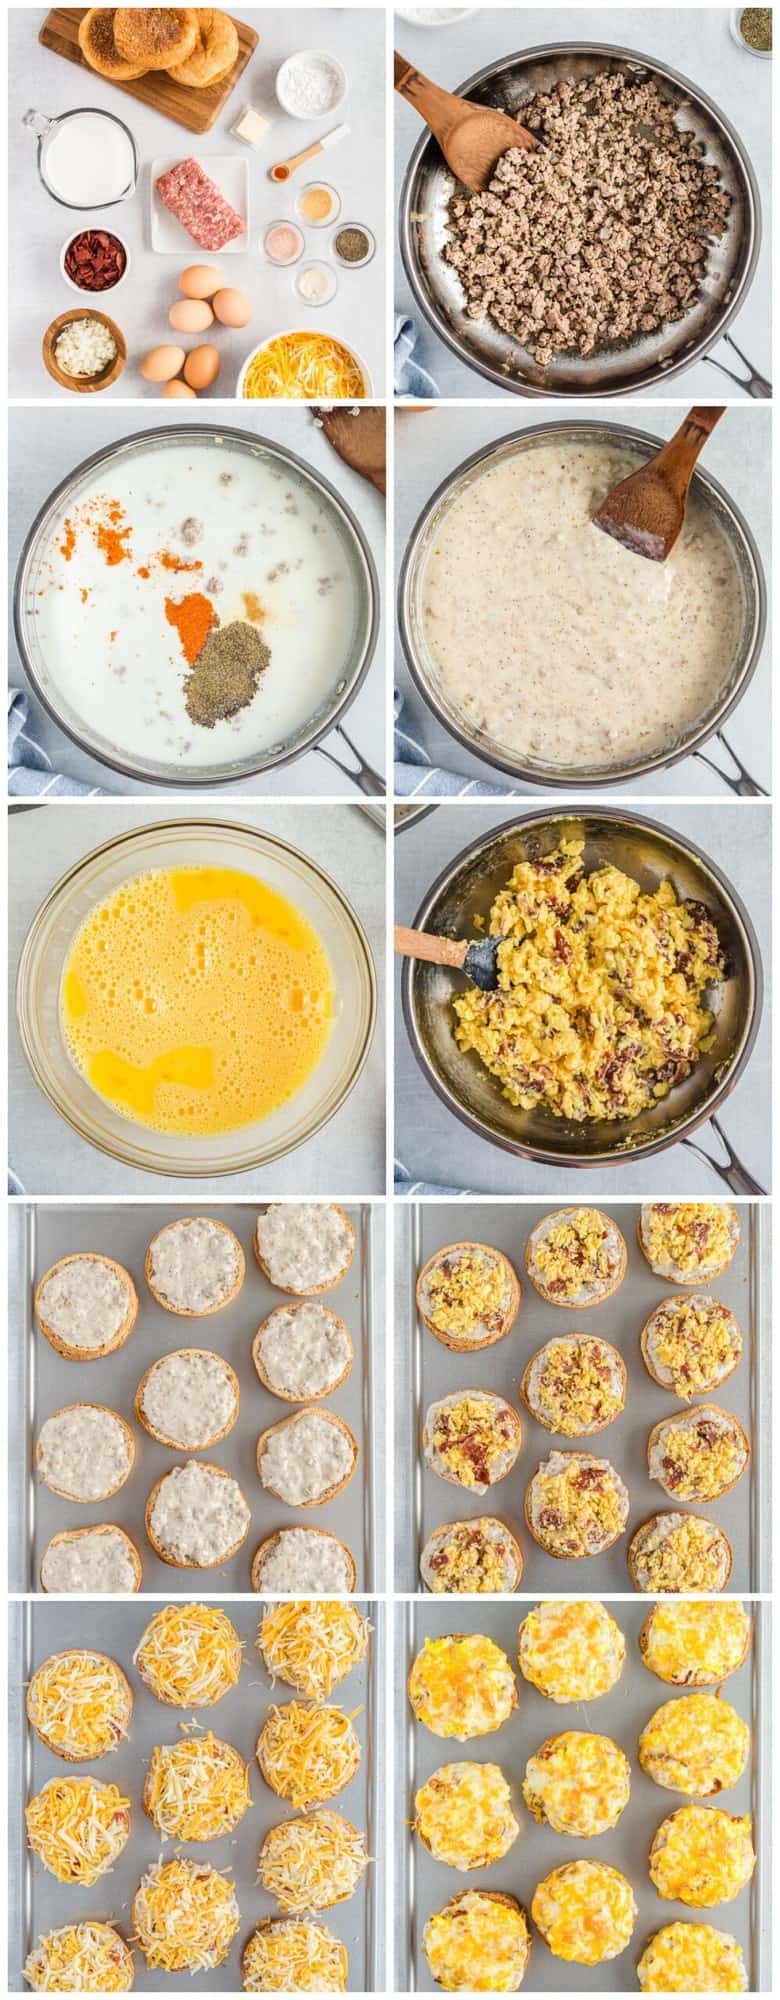 step by step photos for how to make english muffin breakfast pizzas